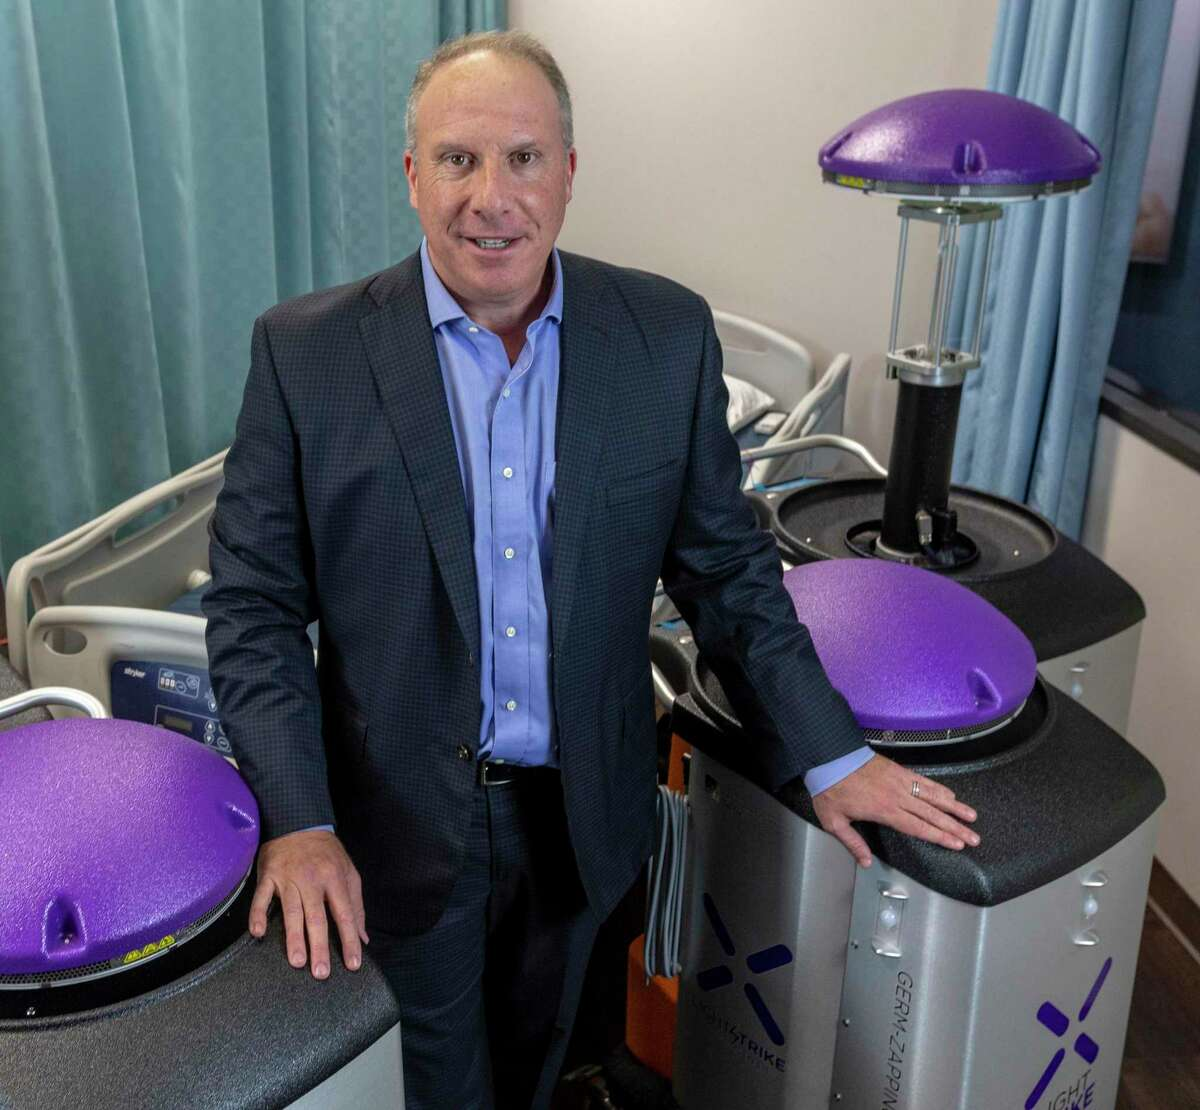 Morris Miller, CEO of Xenex, poses Wednesday, Sept. 2, 2020 with some of the company's LightStrike xenon-light-emitting disinfecting robots.